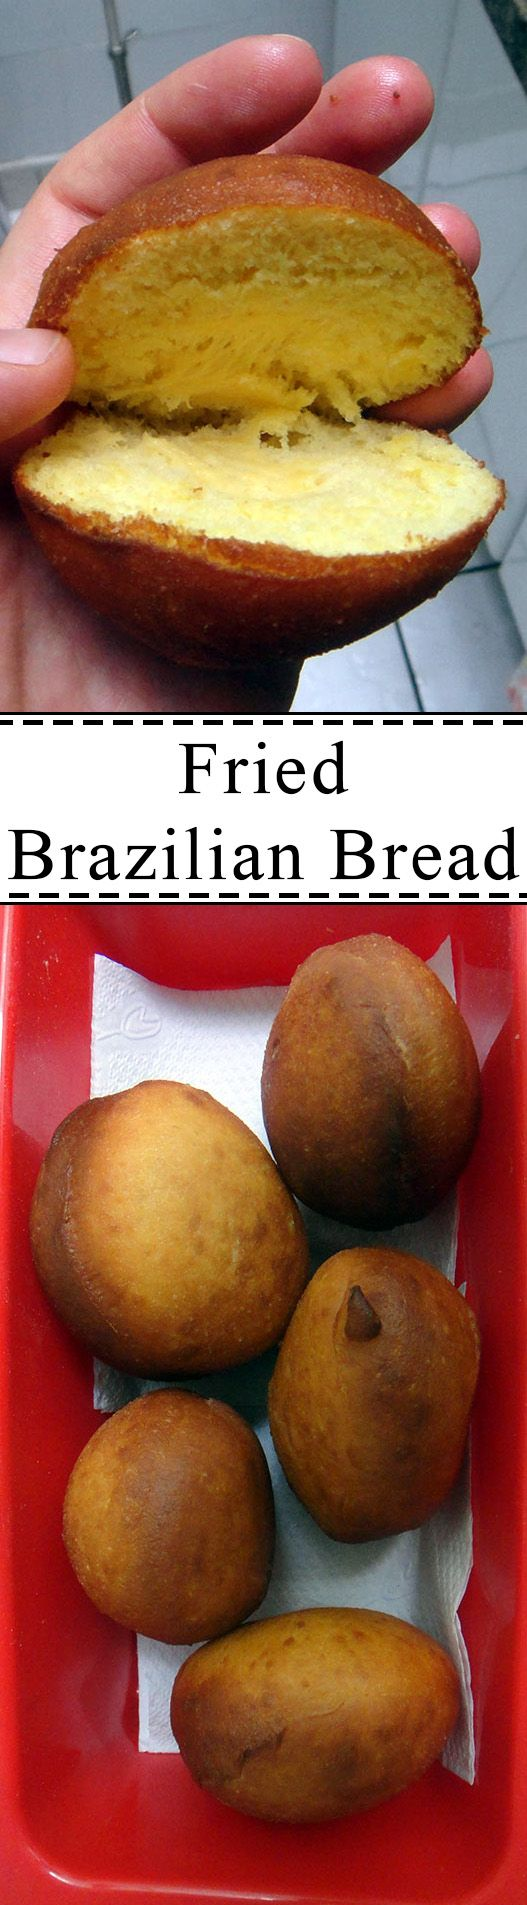 Try out this awesome fried Brazillian bread!